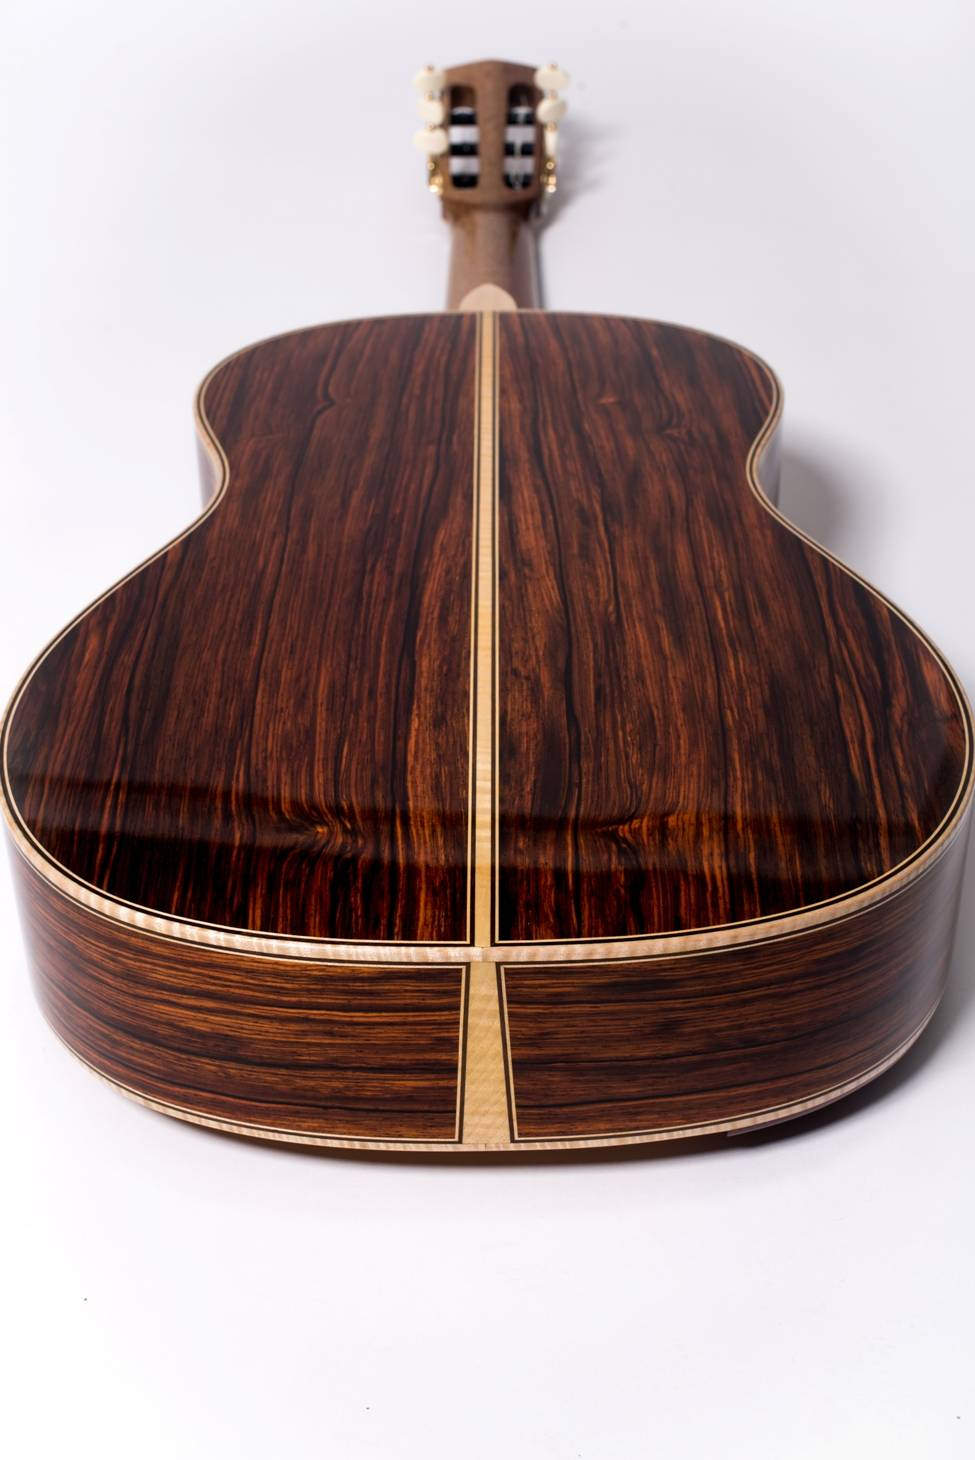 Brazilian Rosewood Guitar Back